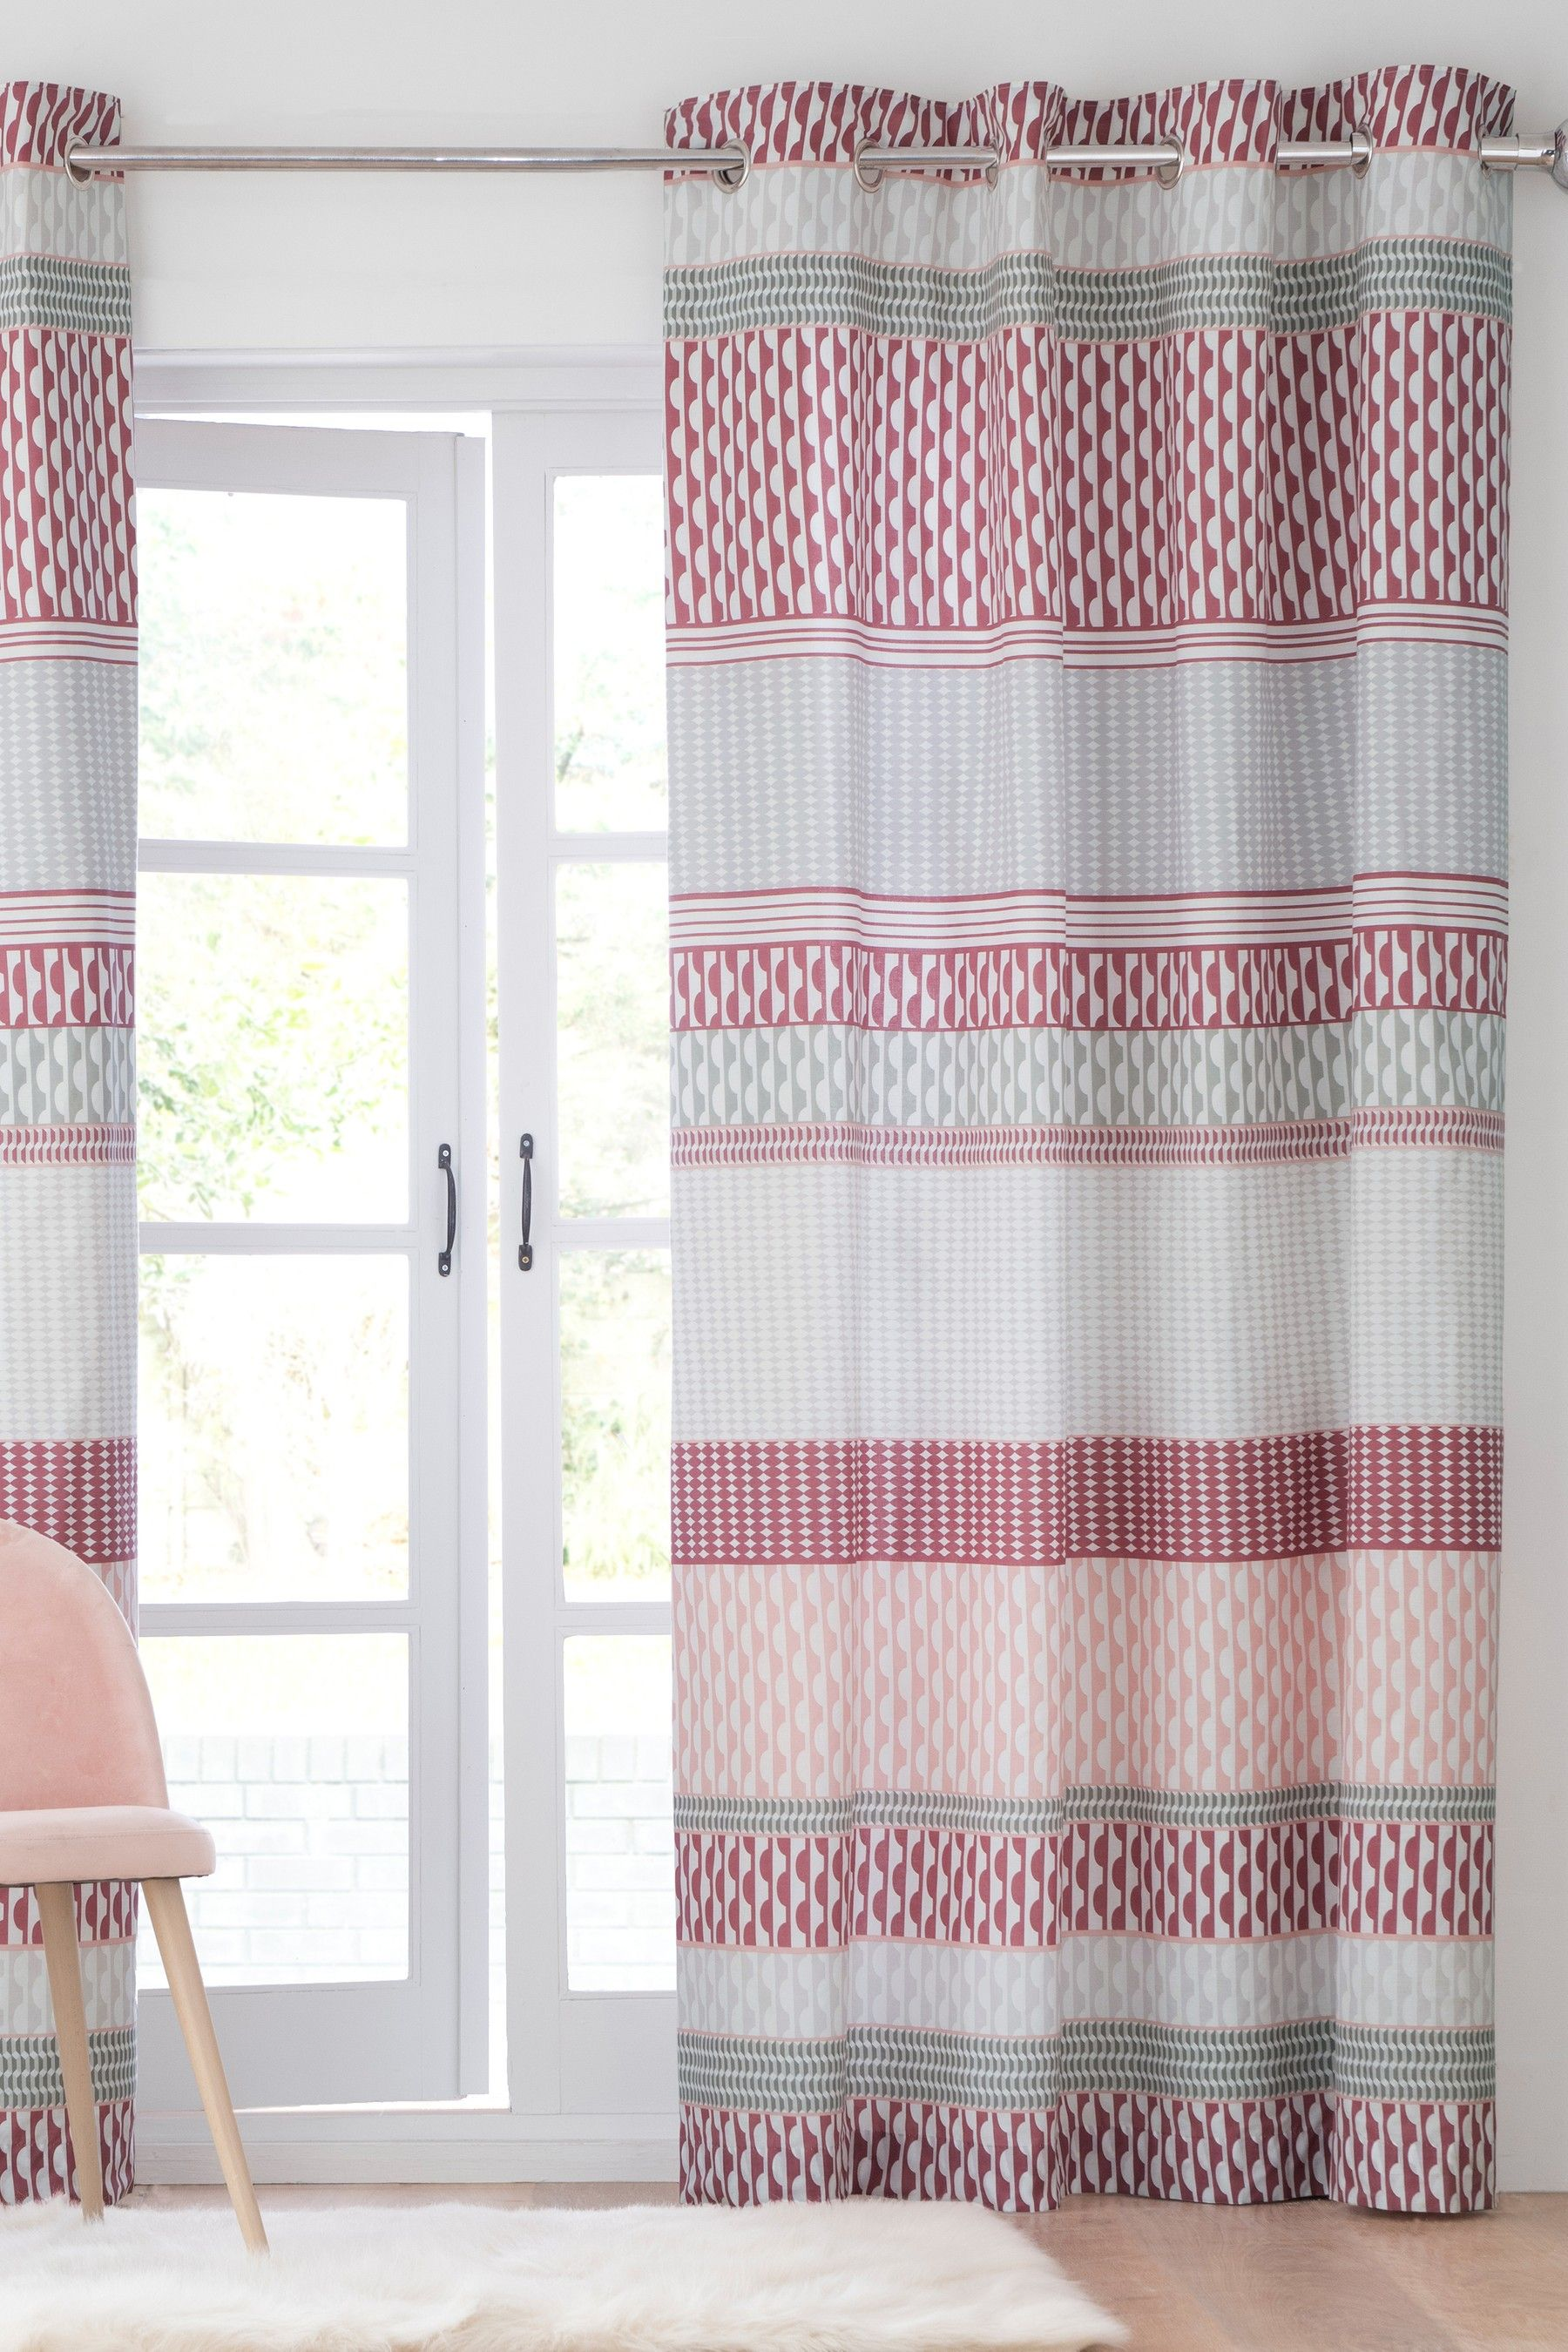 Pin By Sandy William On Rooms Curtains Pink Curtains Bedroom Decor